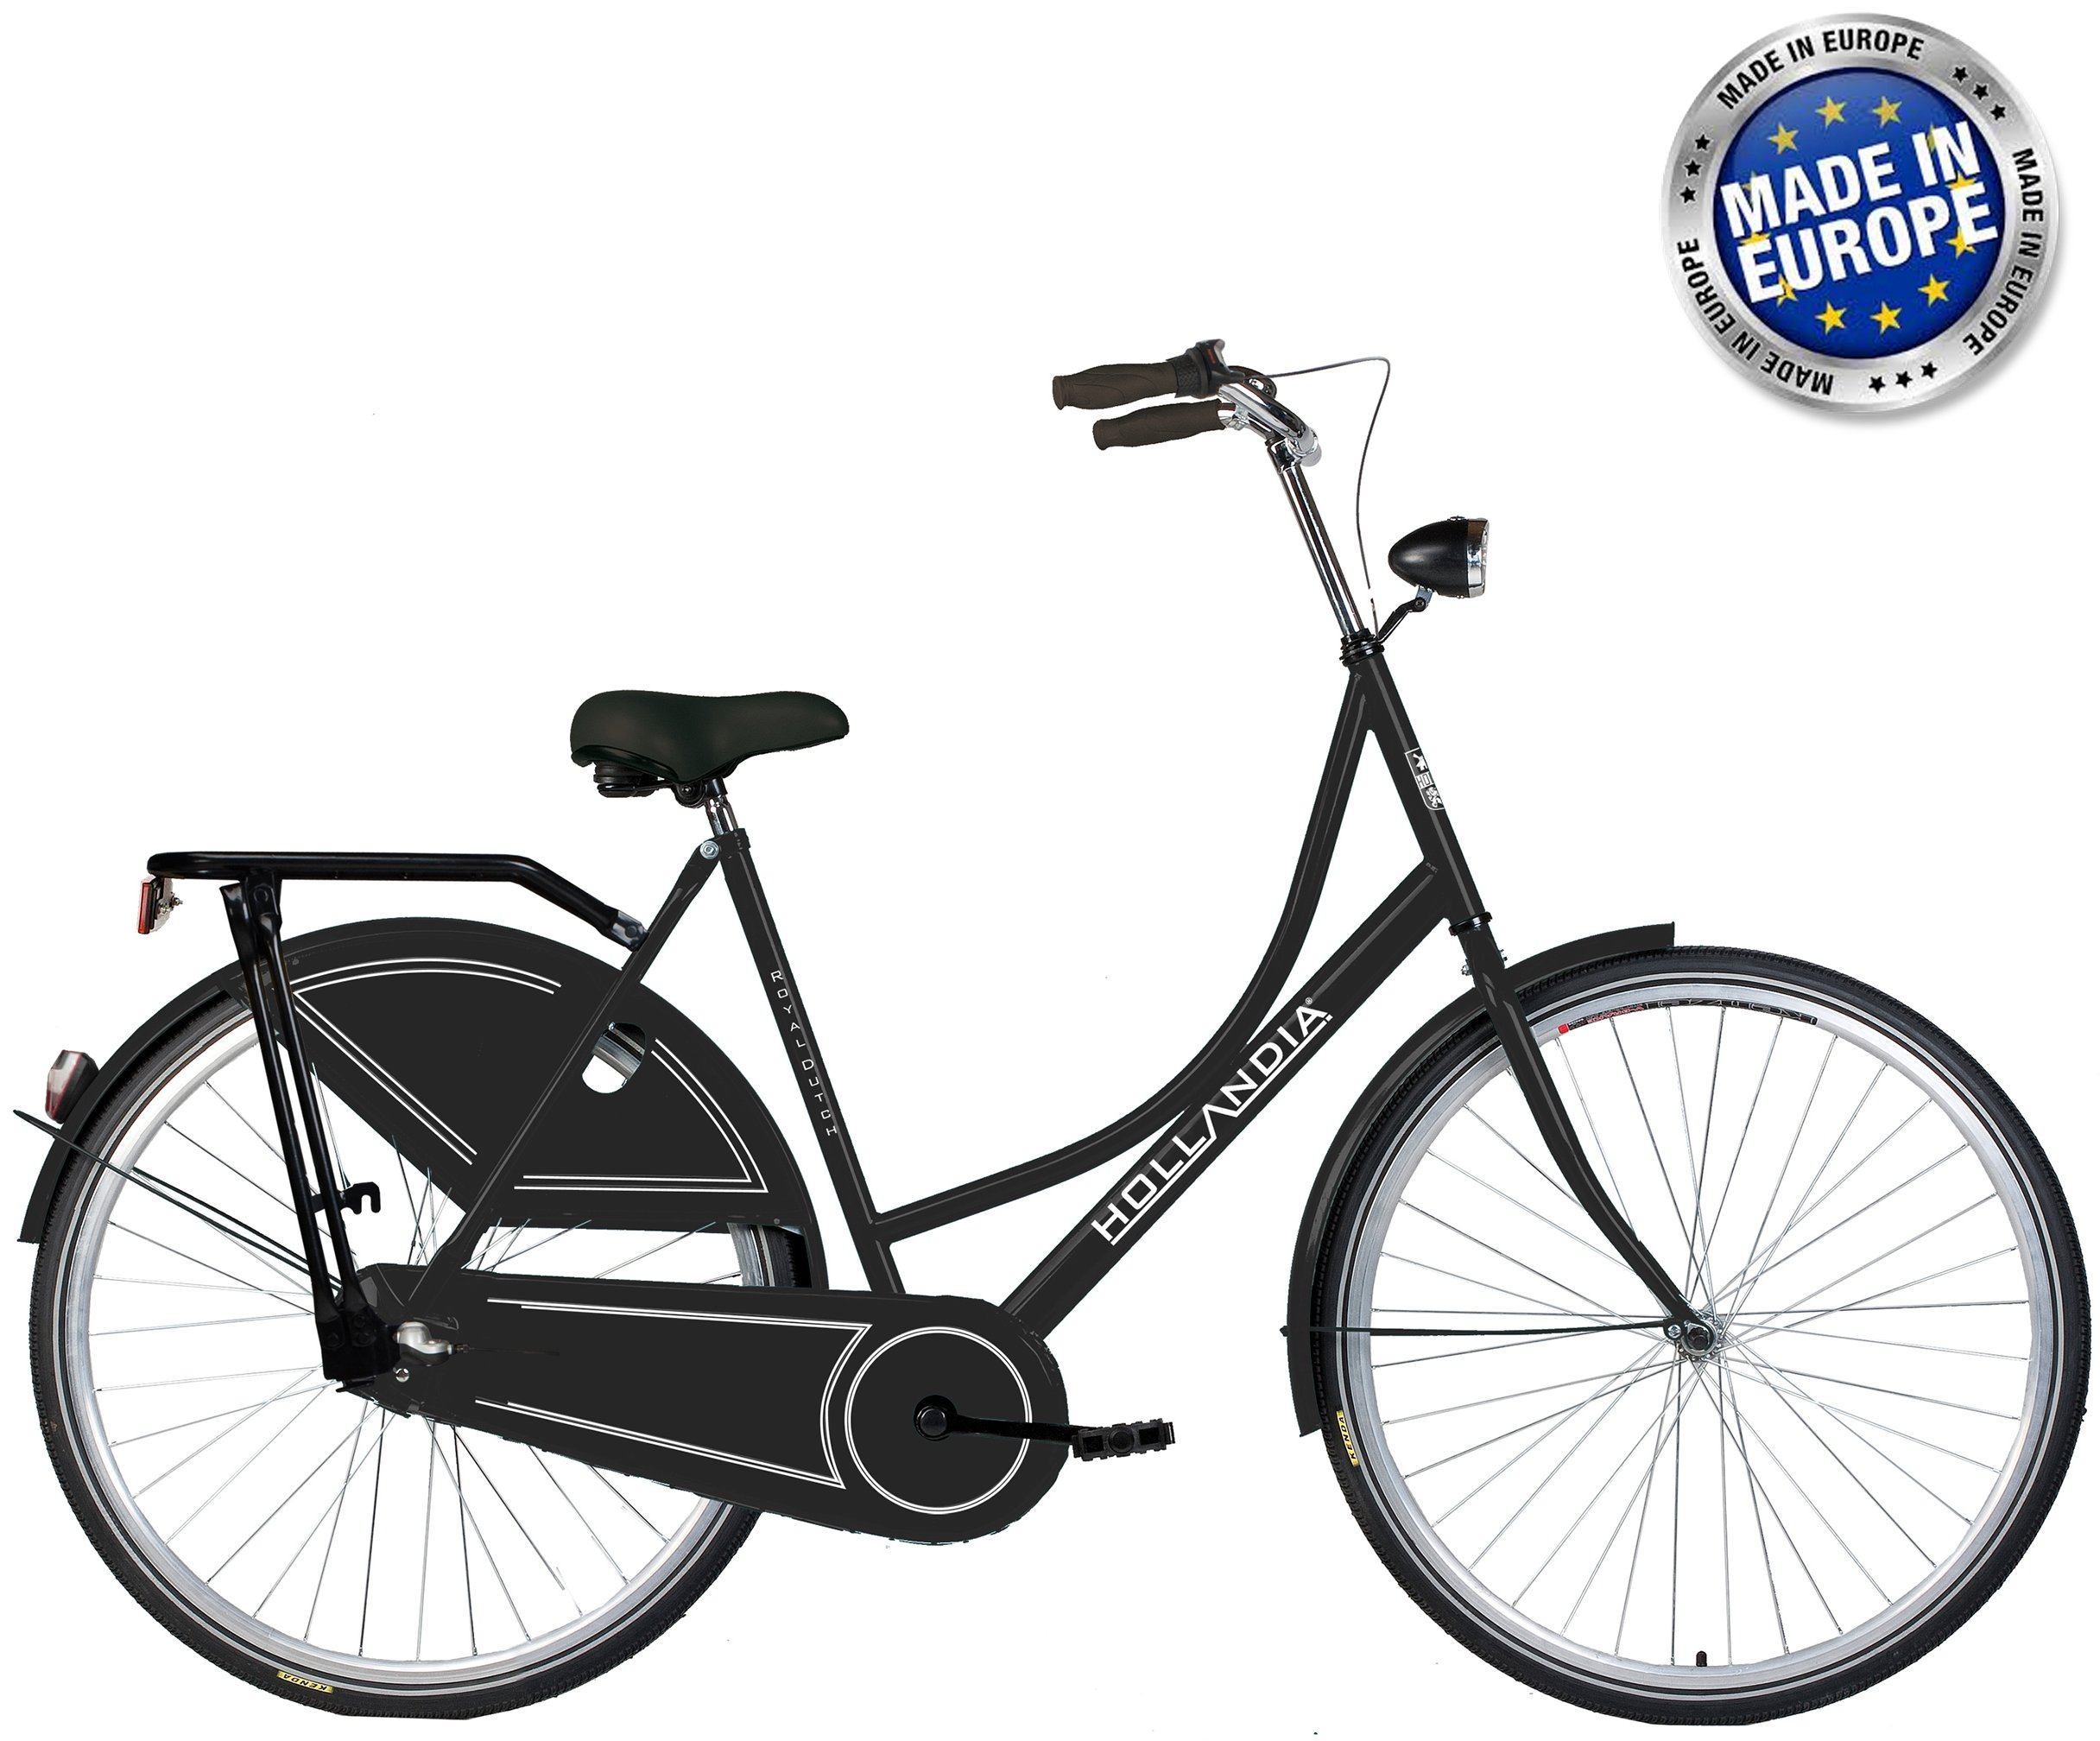 Hollandia Royal Dutch Shimano Nexus 3 Speed City Bike Black 19